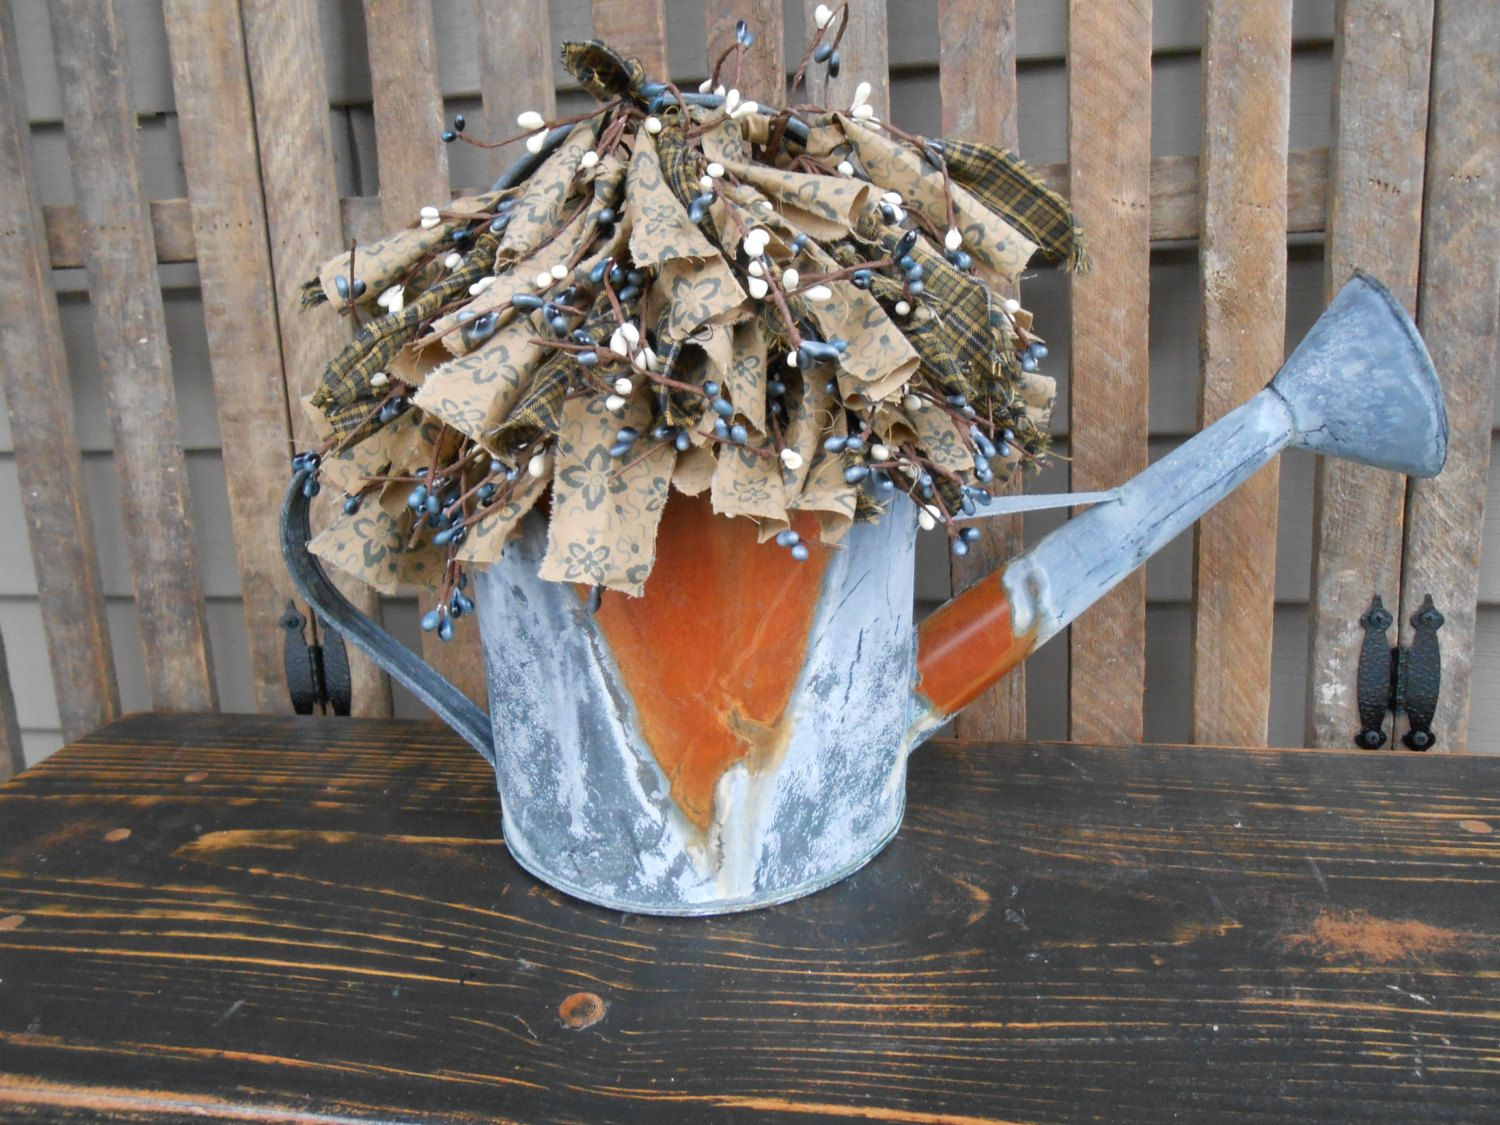 Rusty / Galvanized Watering Can Floral Arrangement-Country-Garden-Farmhouse-Cottage-Primitive-Lodge-Rags & Berries. $30.00, via Etsy.